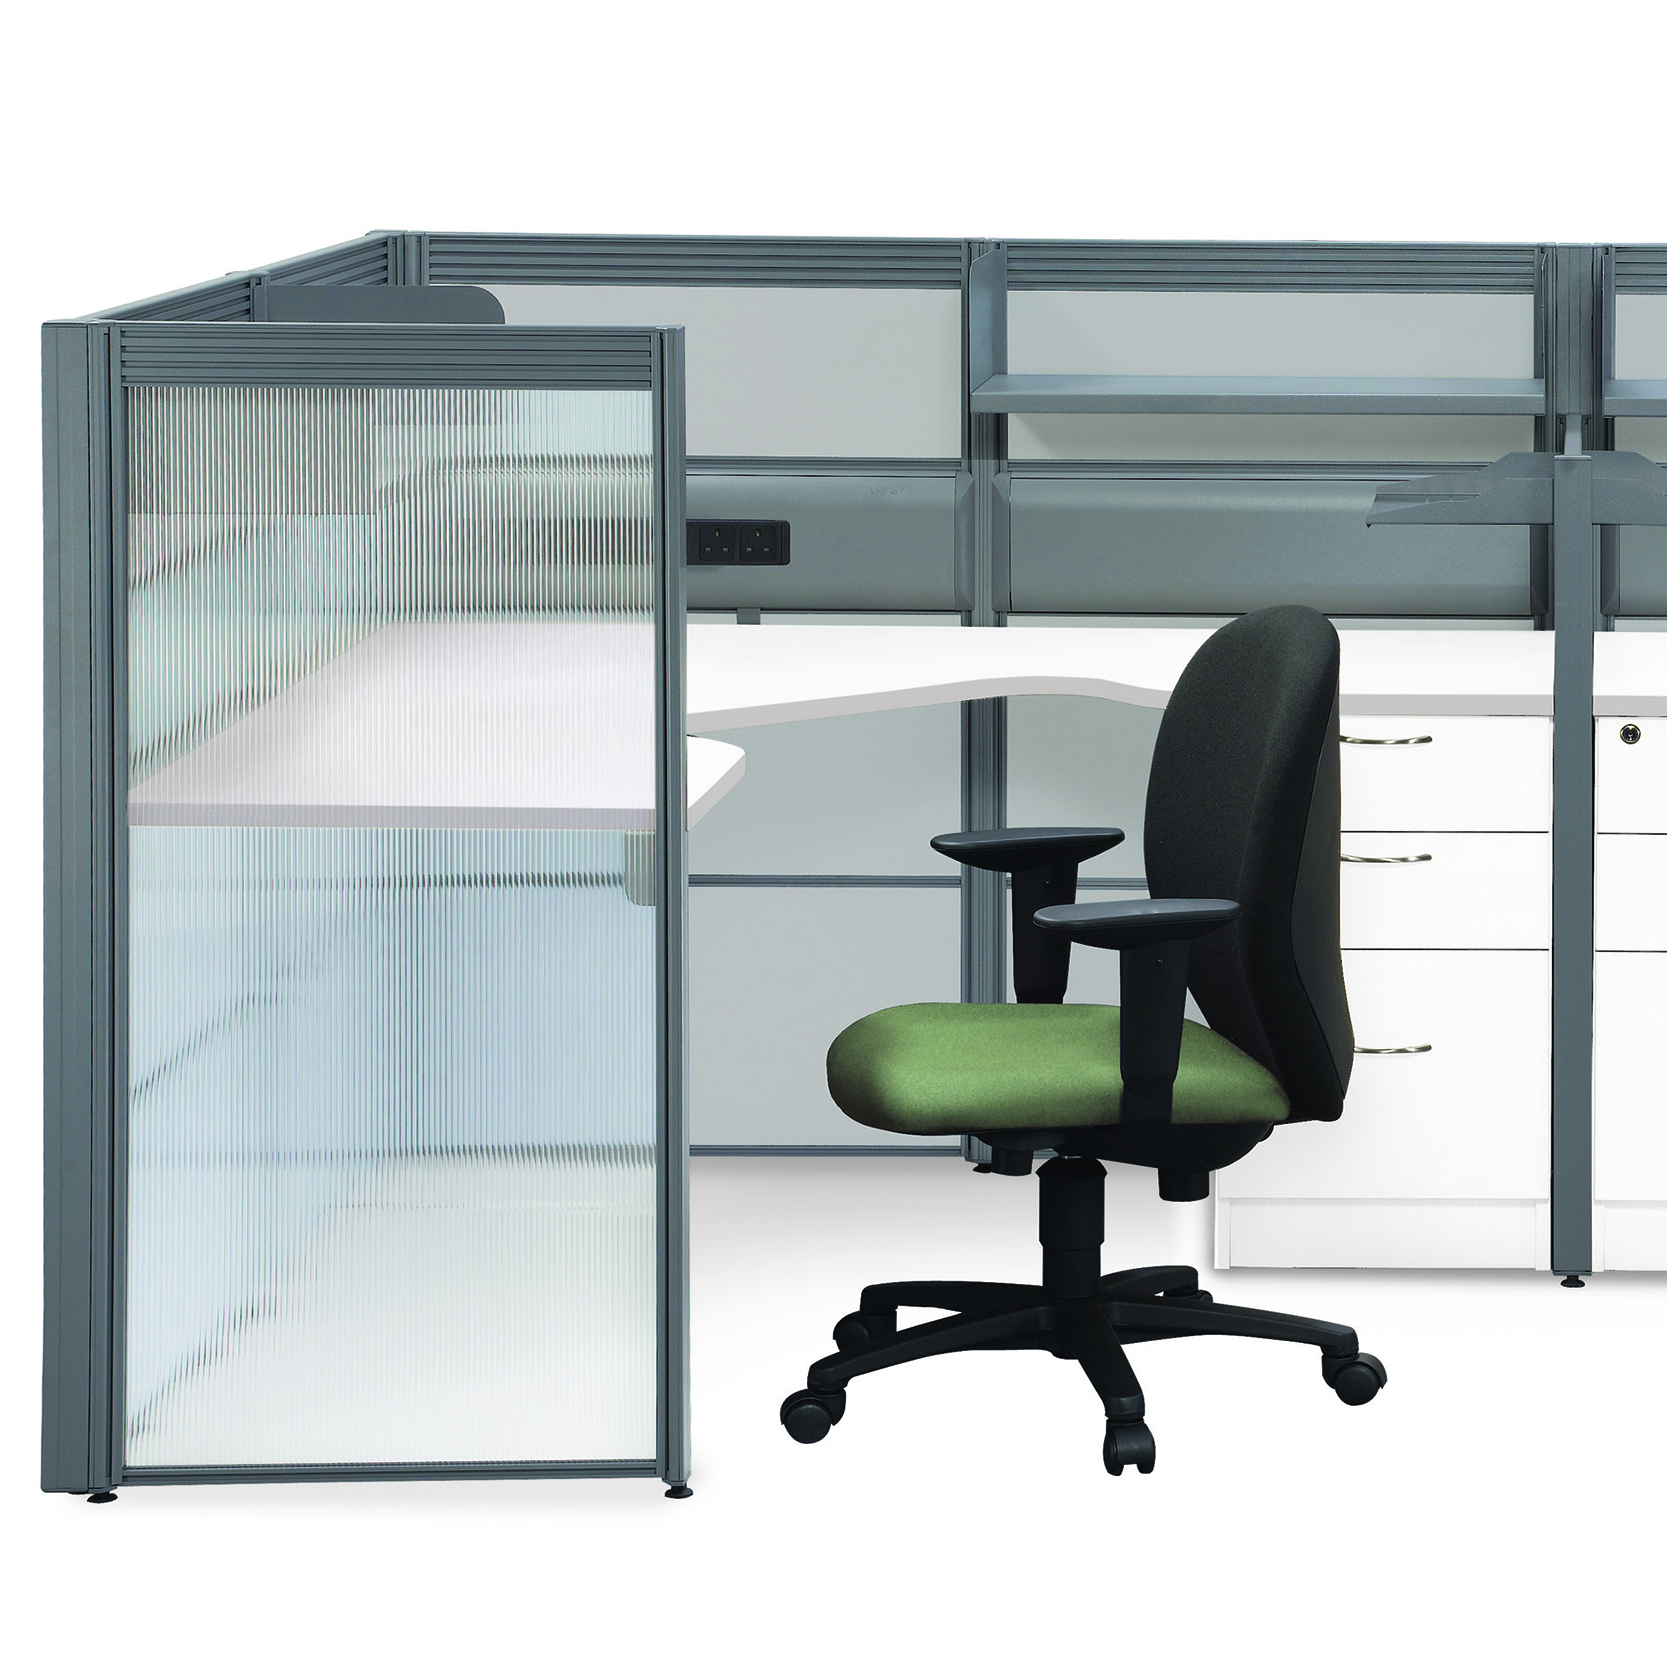 U-Plan Executive Wstation Panel System.jpg